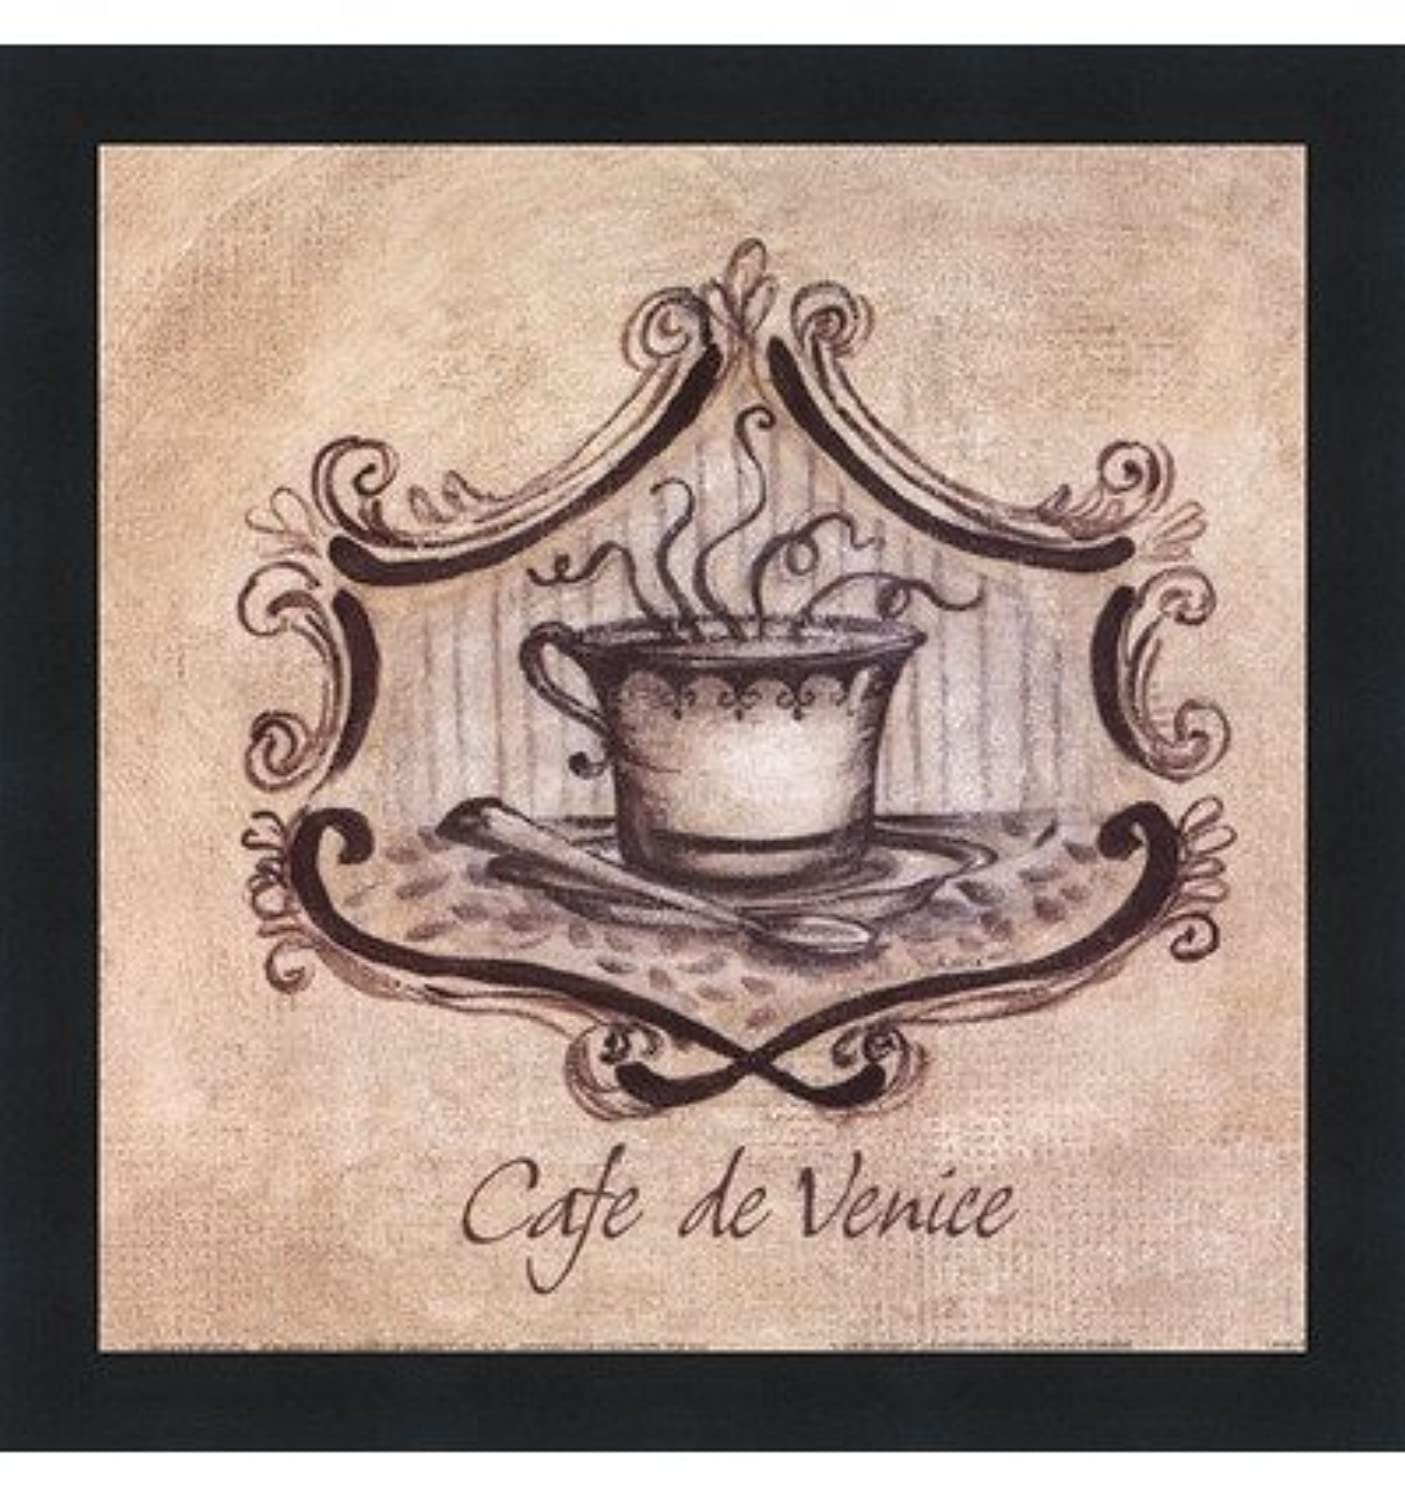 Cafe De Venice by Kate McRostie – 9 x 9インチ – アートプリントポスター LE_104100-F101-9x9